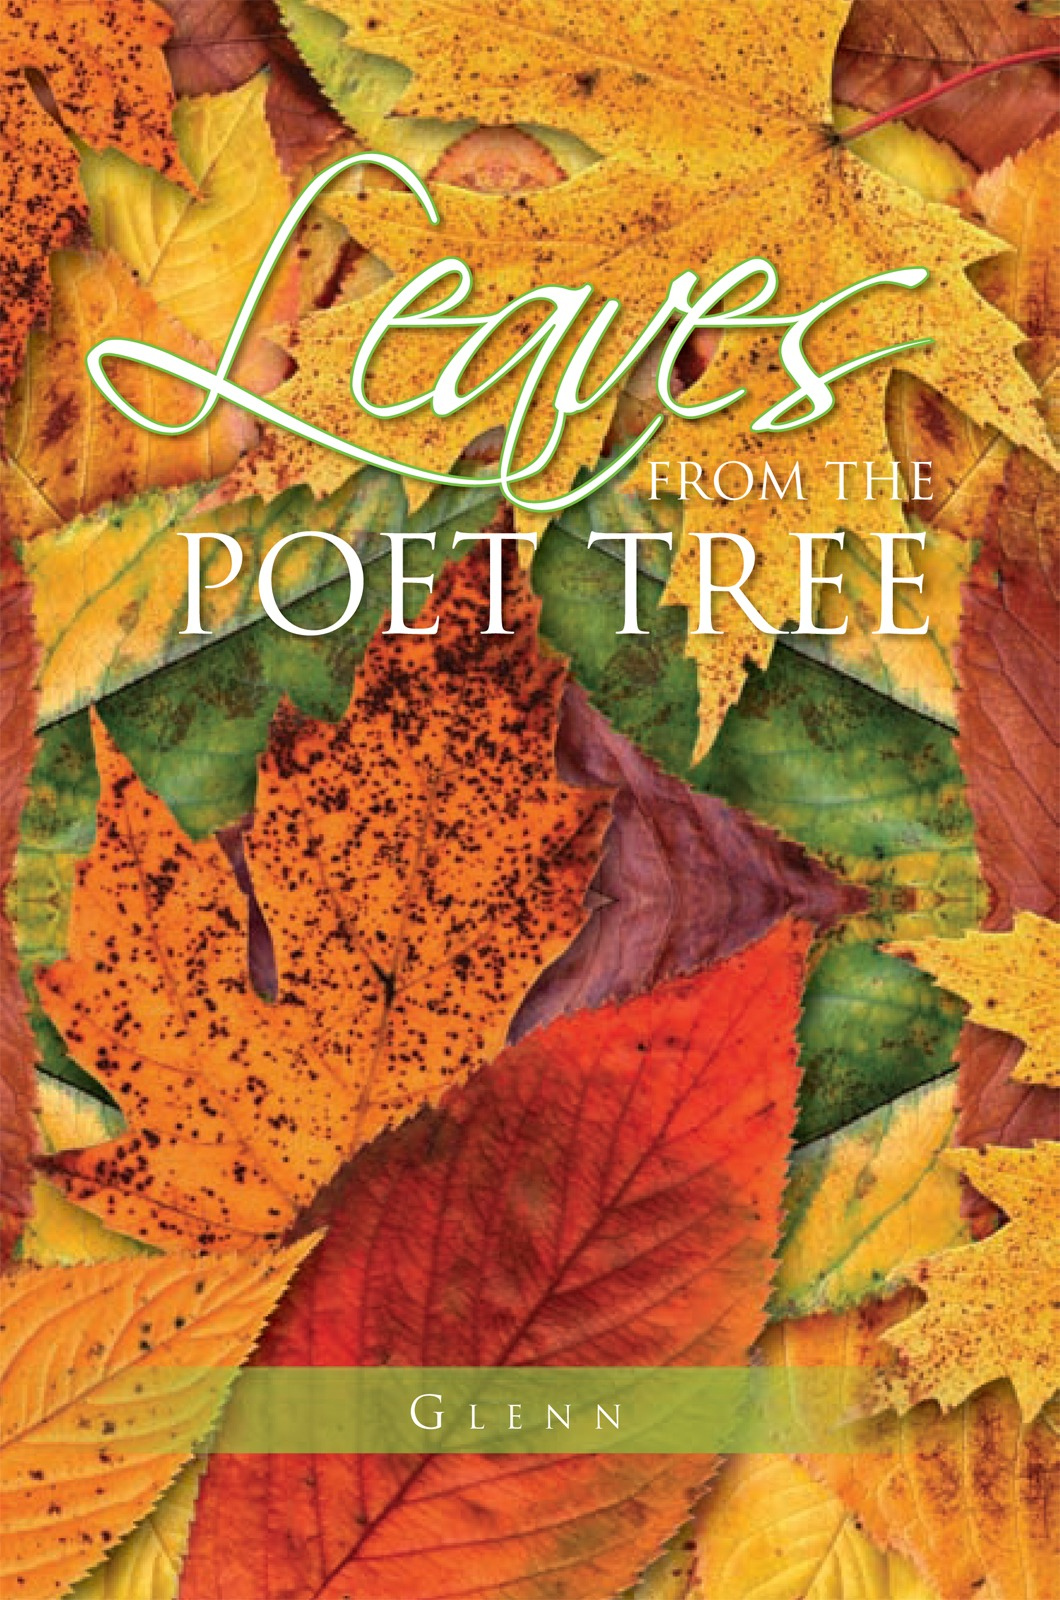 Leaves from the Poet Tree